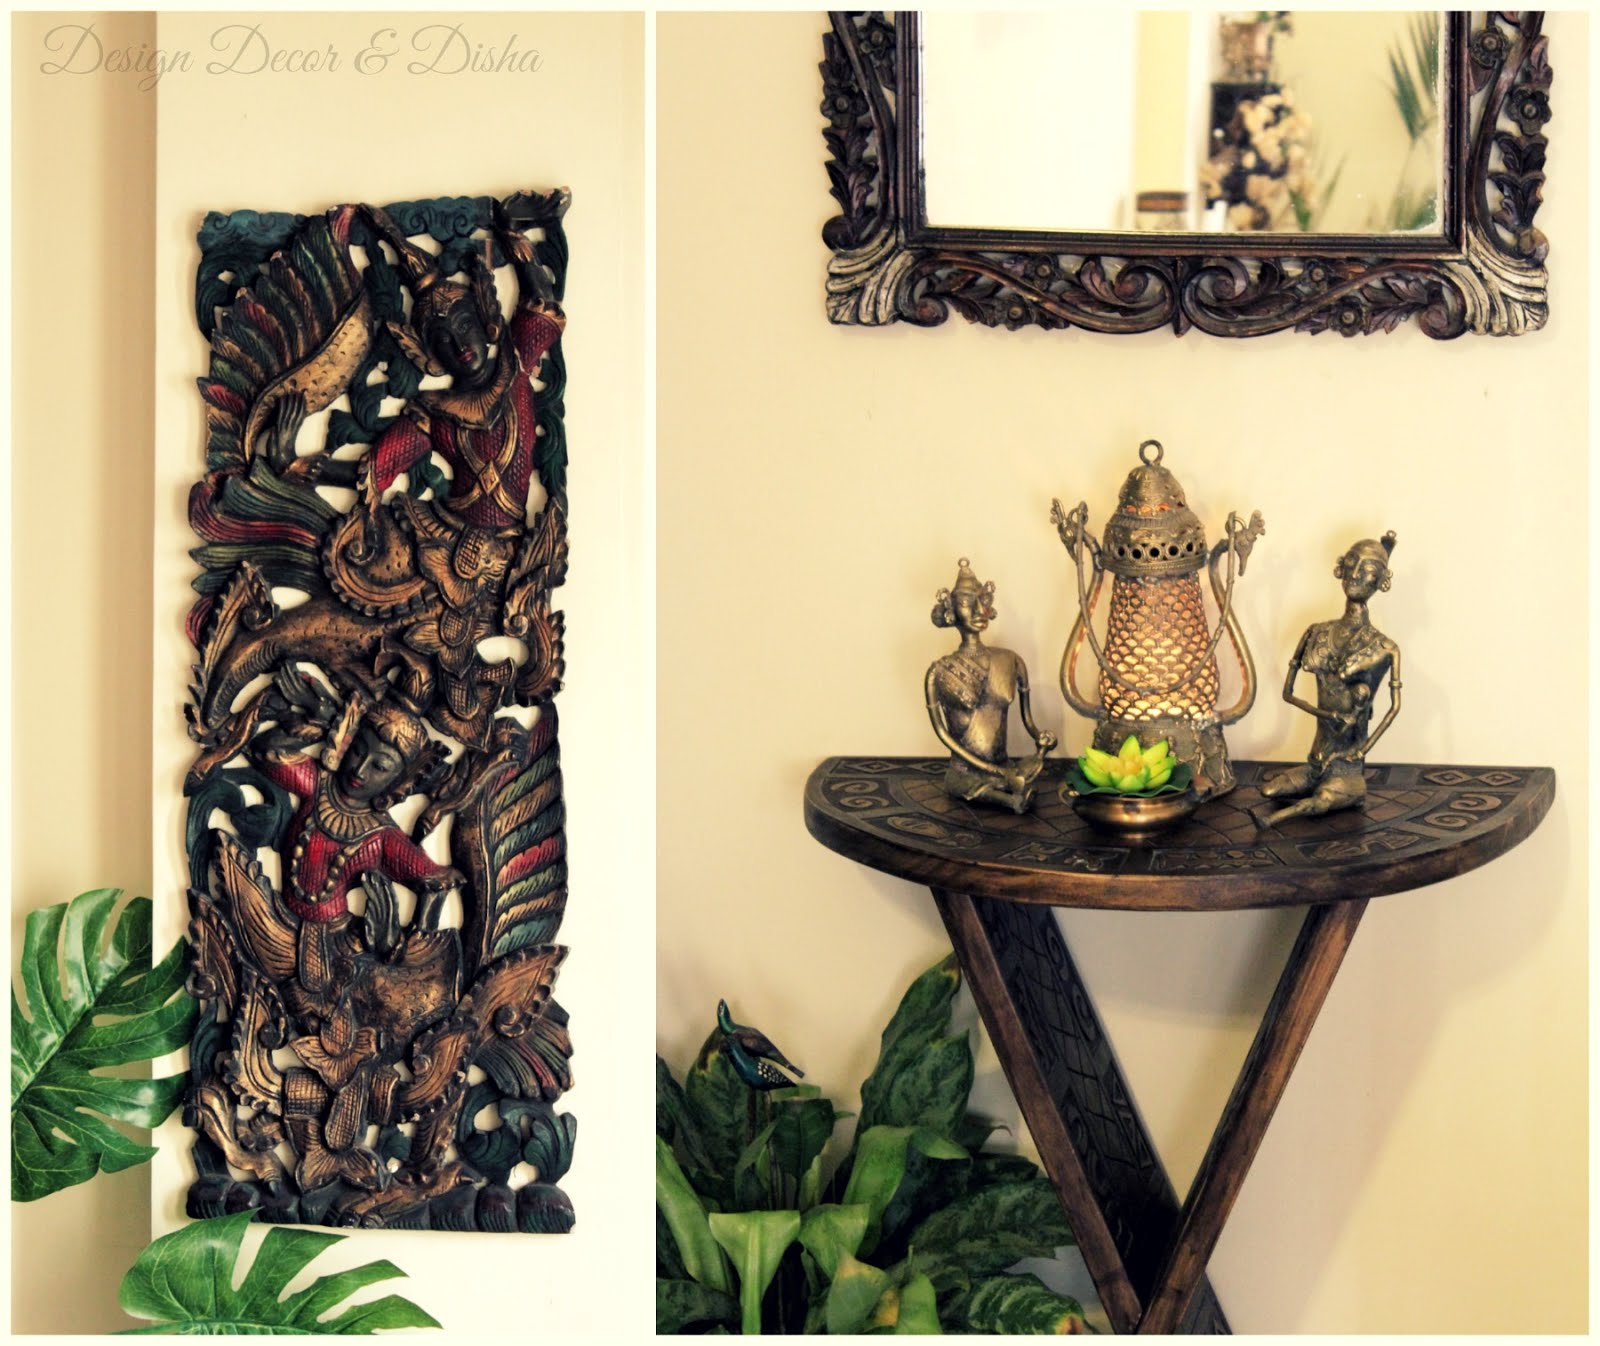 Wall Decor Ideas Blog : Design decor disha an indian home